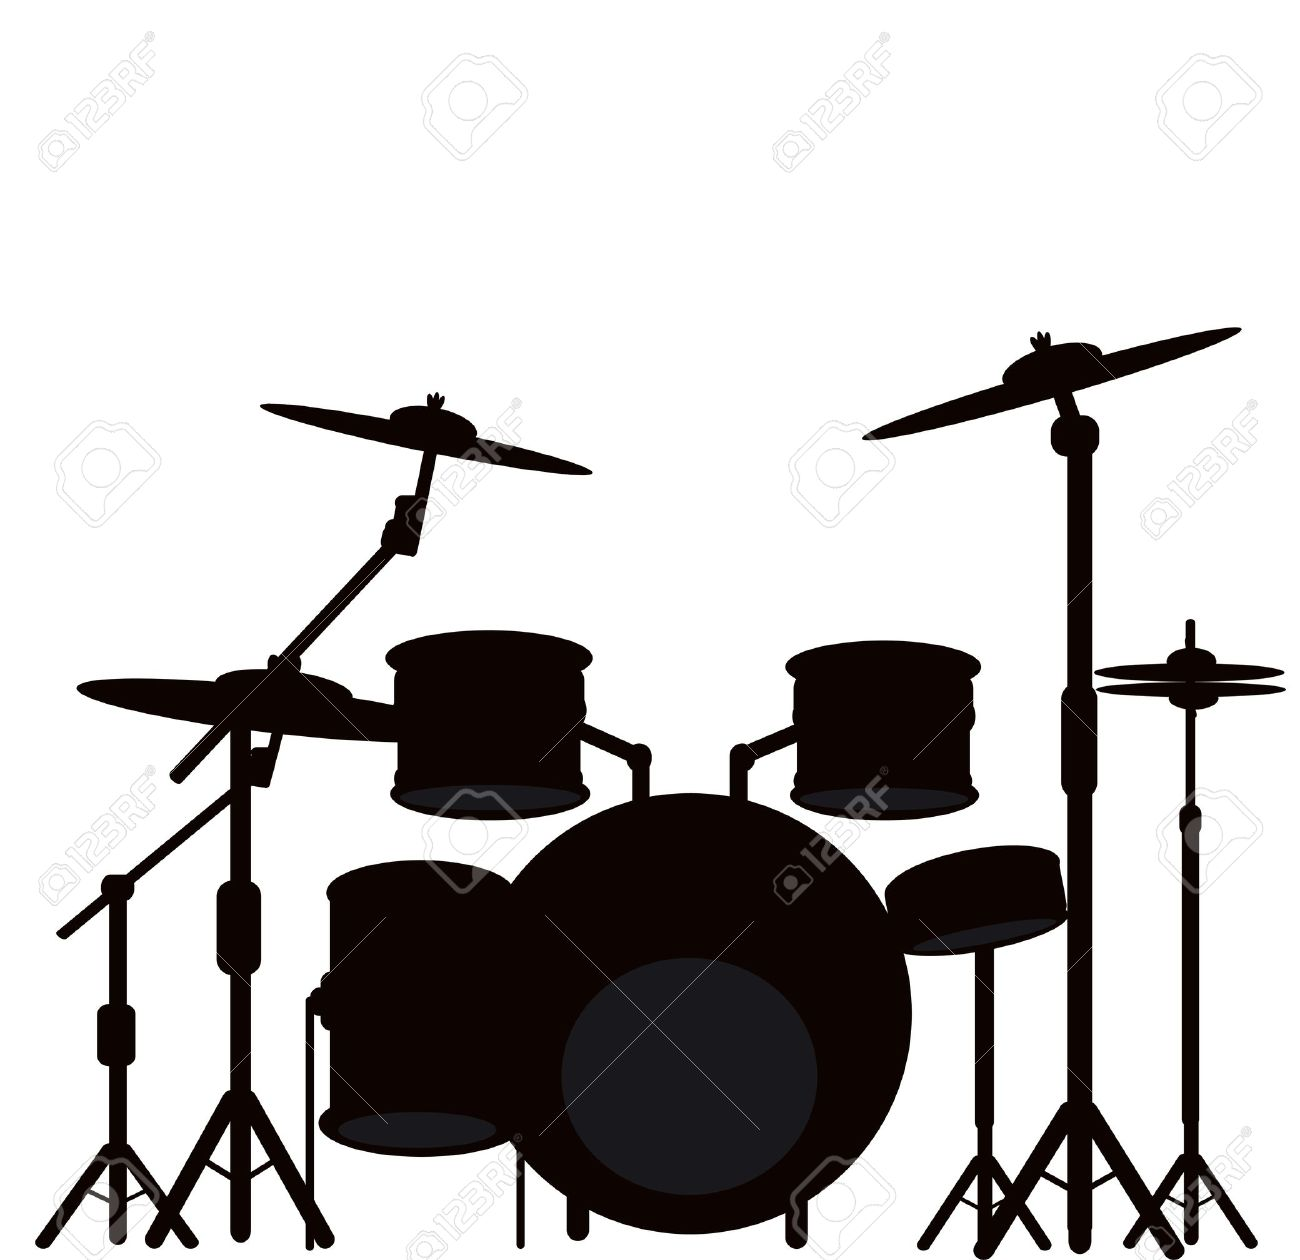 Illustration Of A Drum Kit Stock Photo, Picture And Royalty Free ...